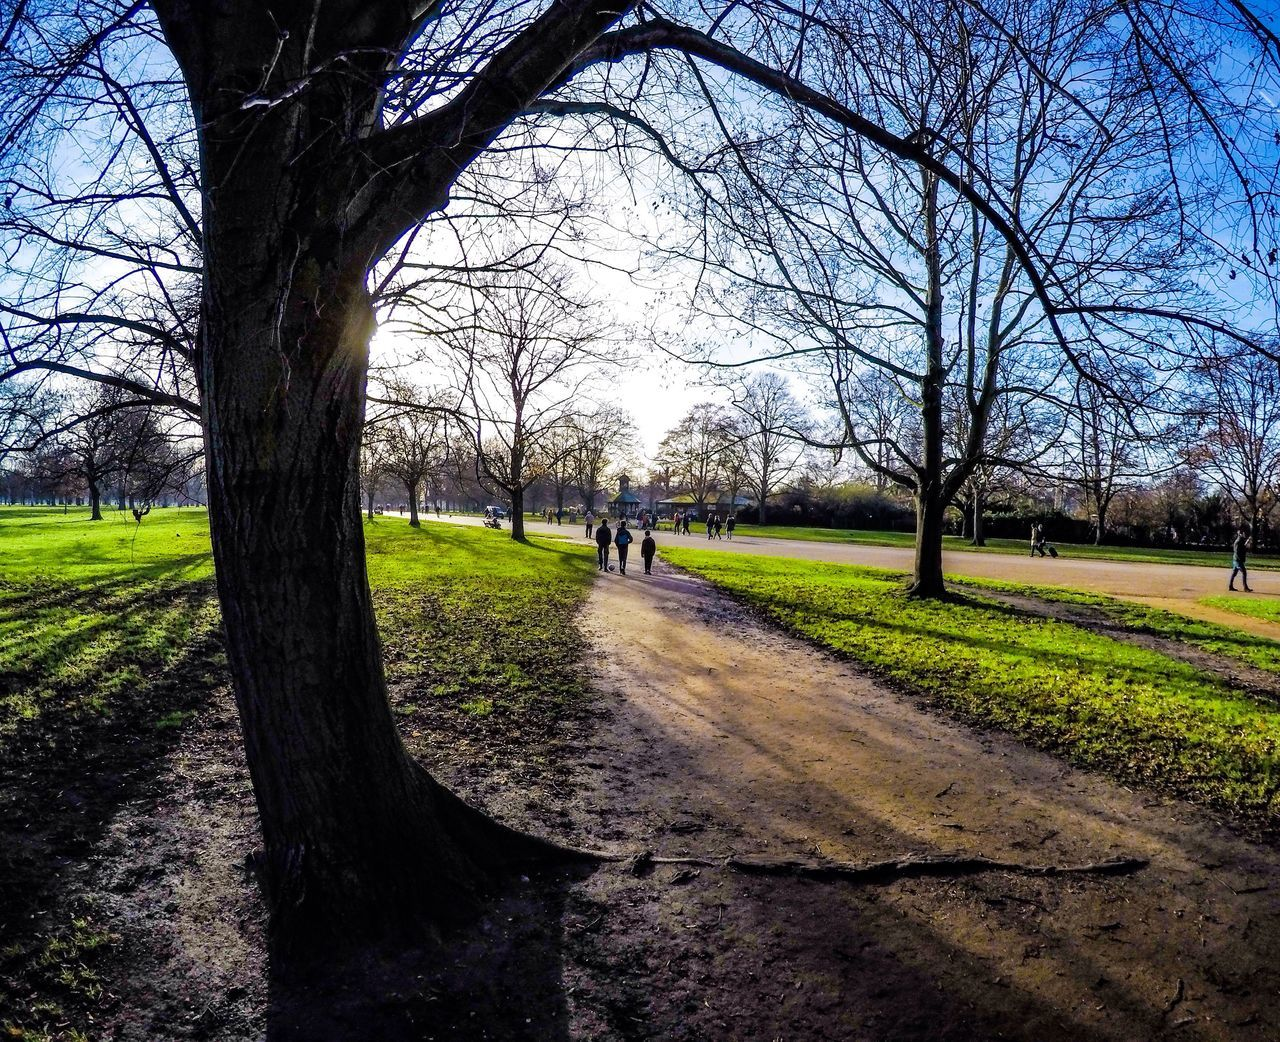 Kensington Park Tree Bare Tree Nature Grass Outdoors Day Photography Photooftheday Photographer GoPrography Goprooftheday